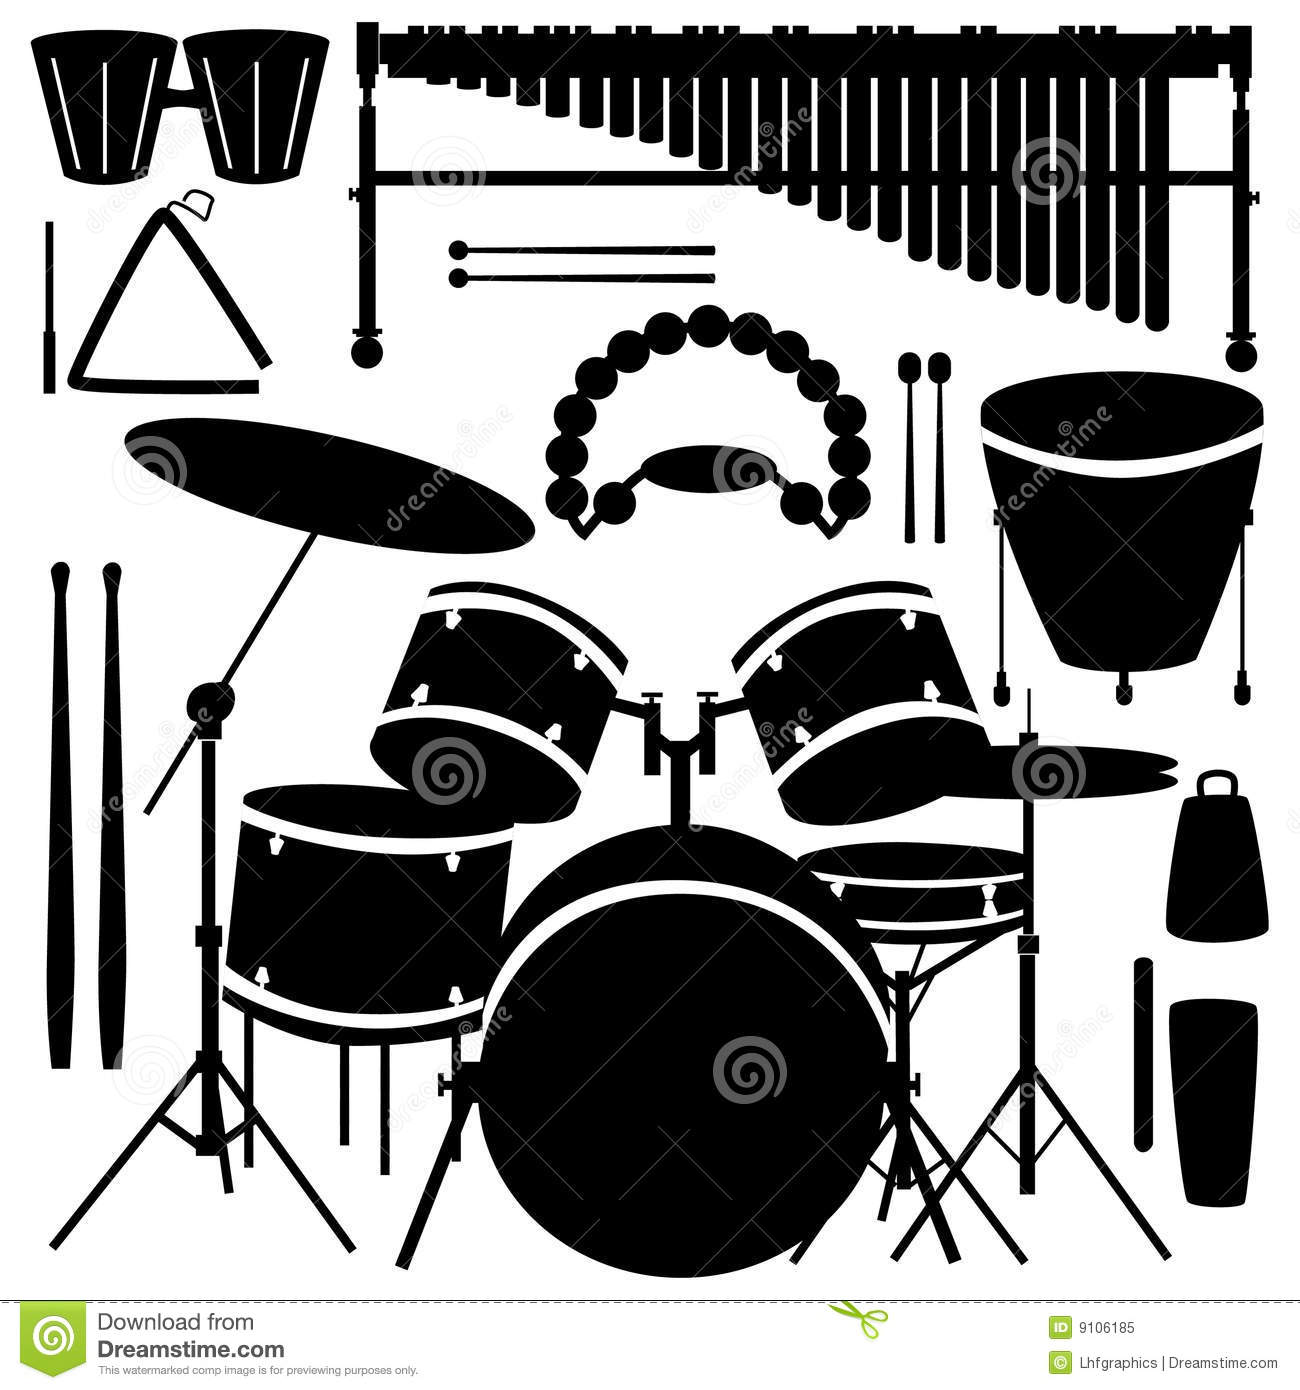 Drums And Percussion Instruments Royalty Free Stock Photo   Image